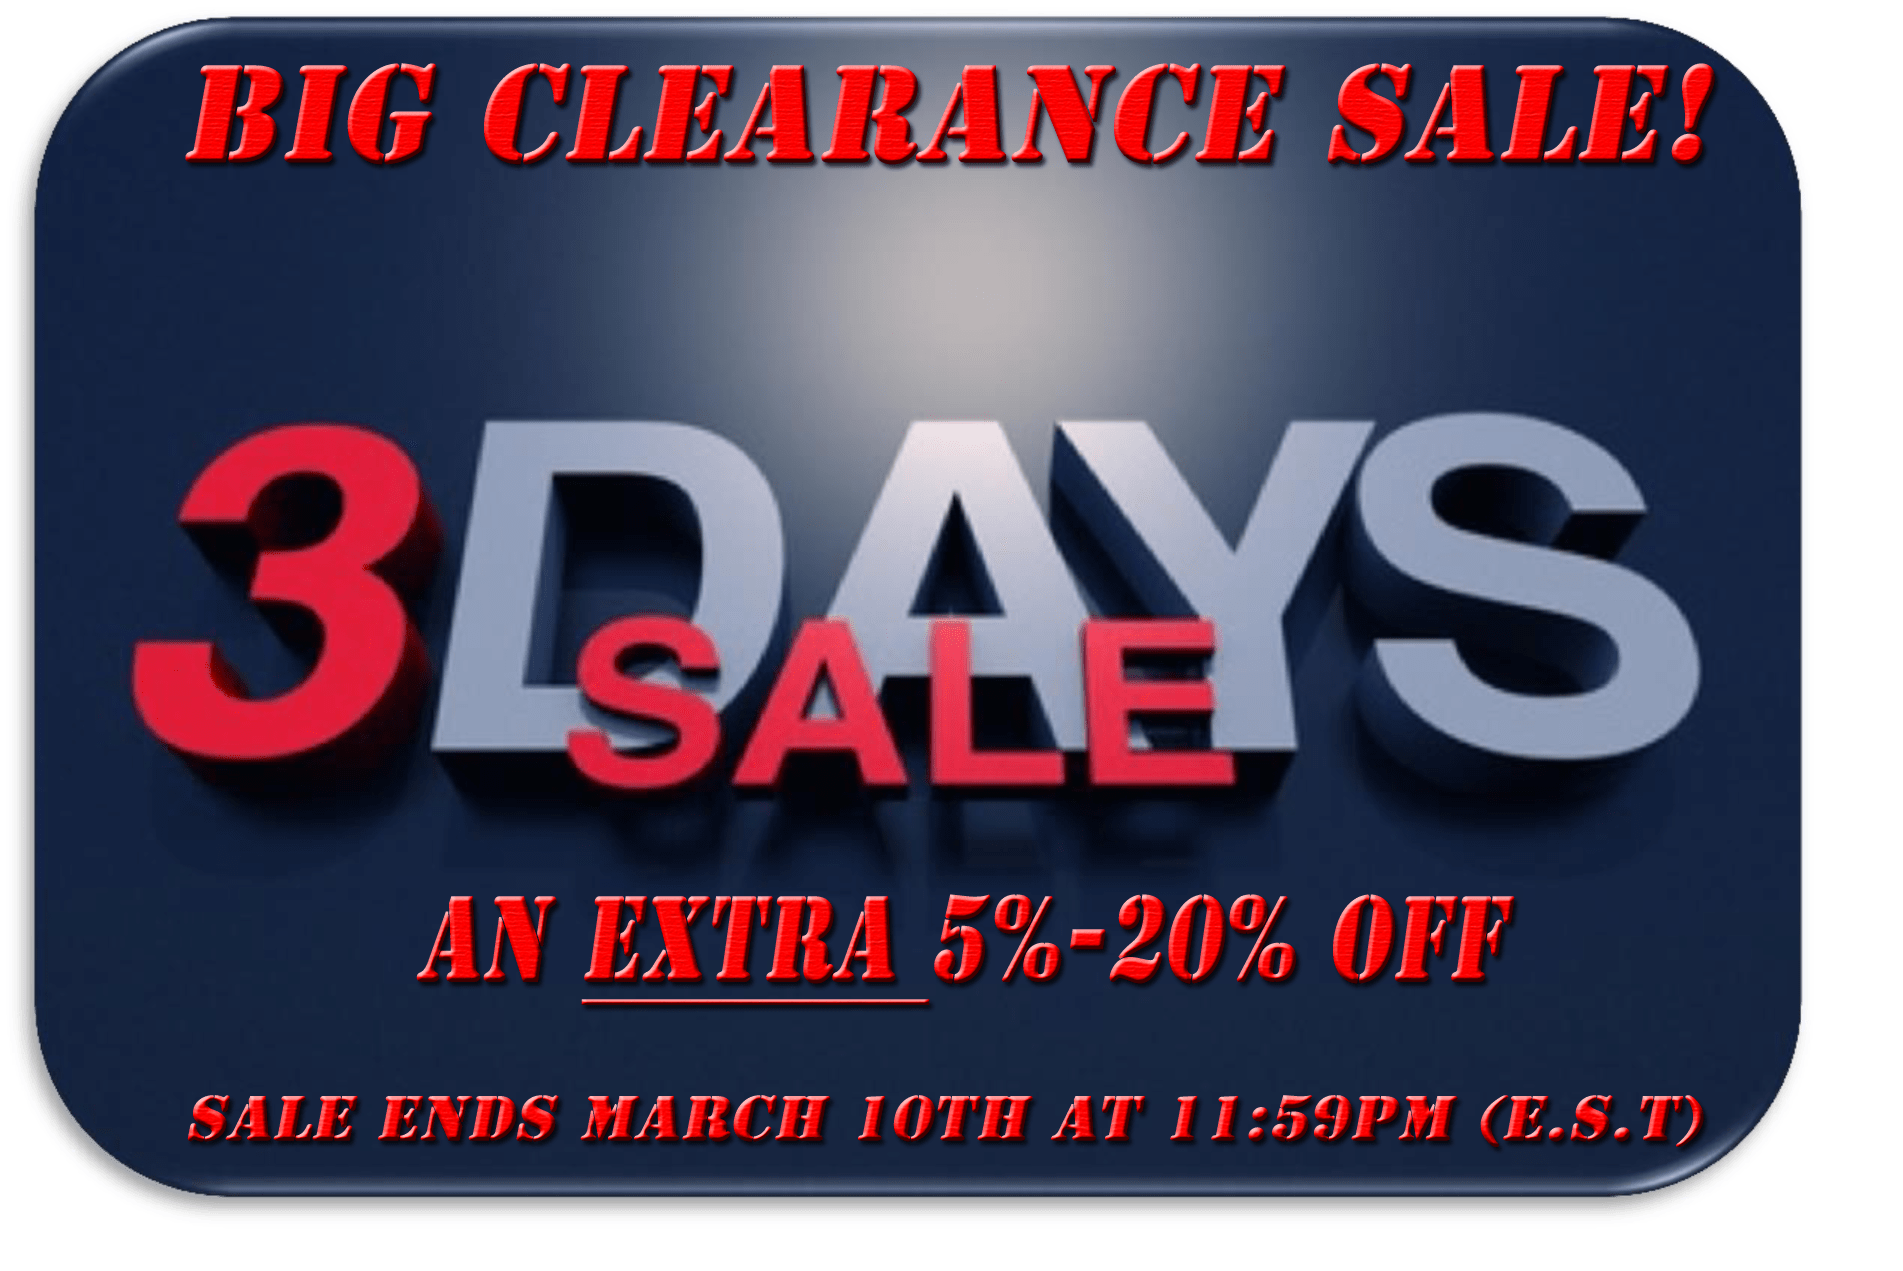 3 Days to Get an Extran 5%-20% Off